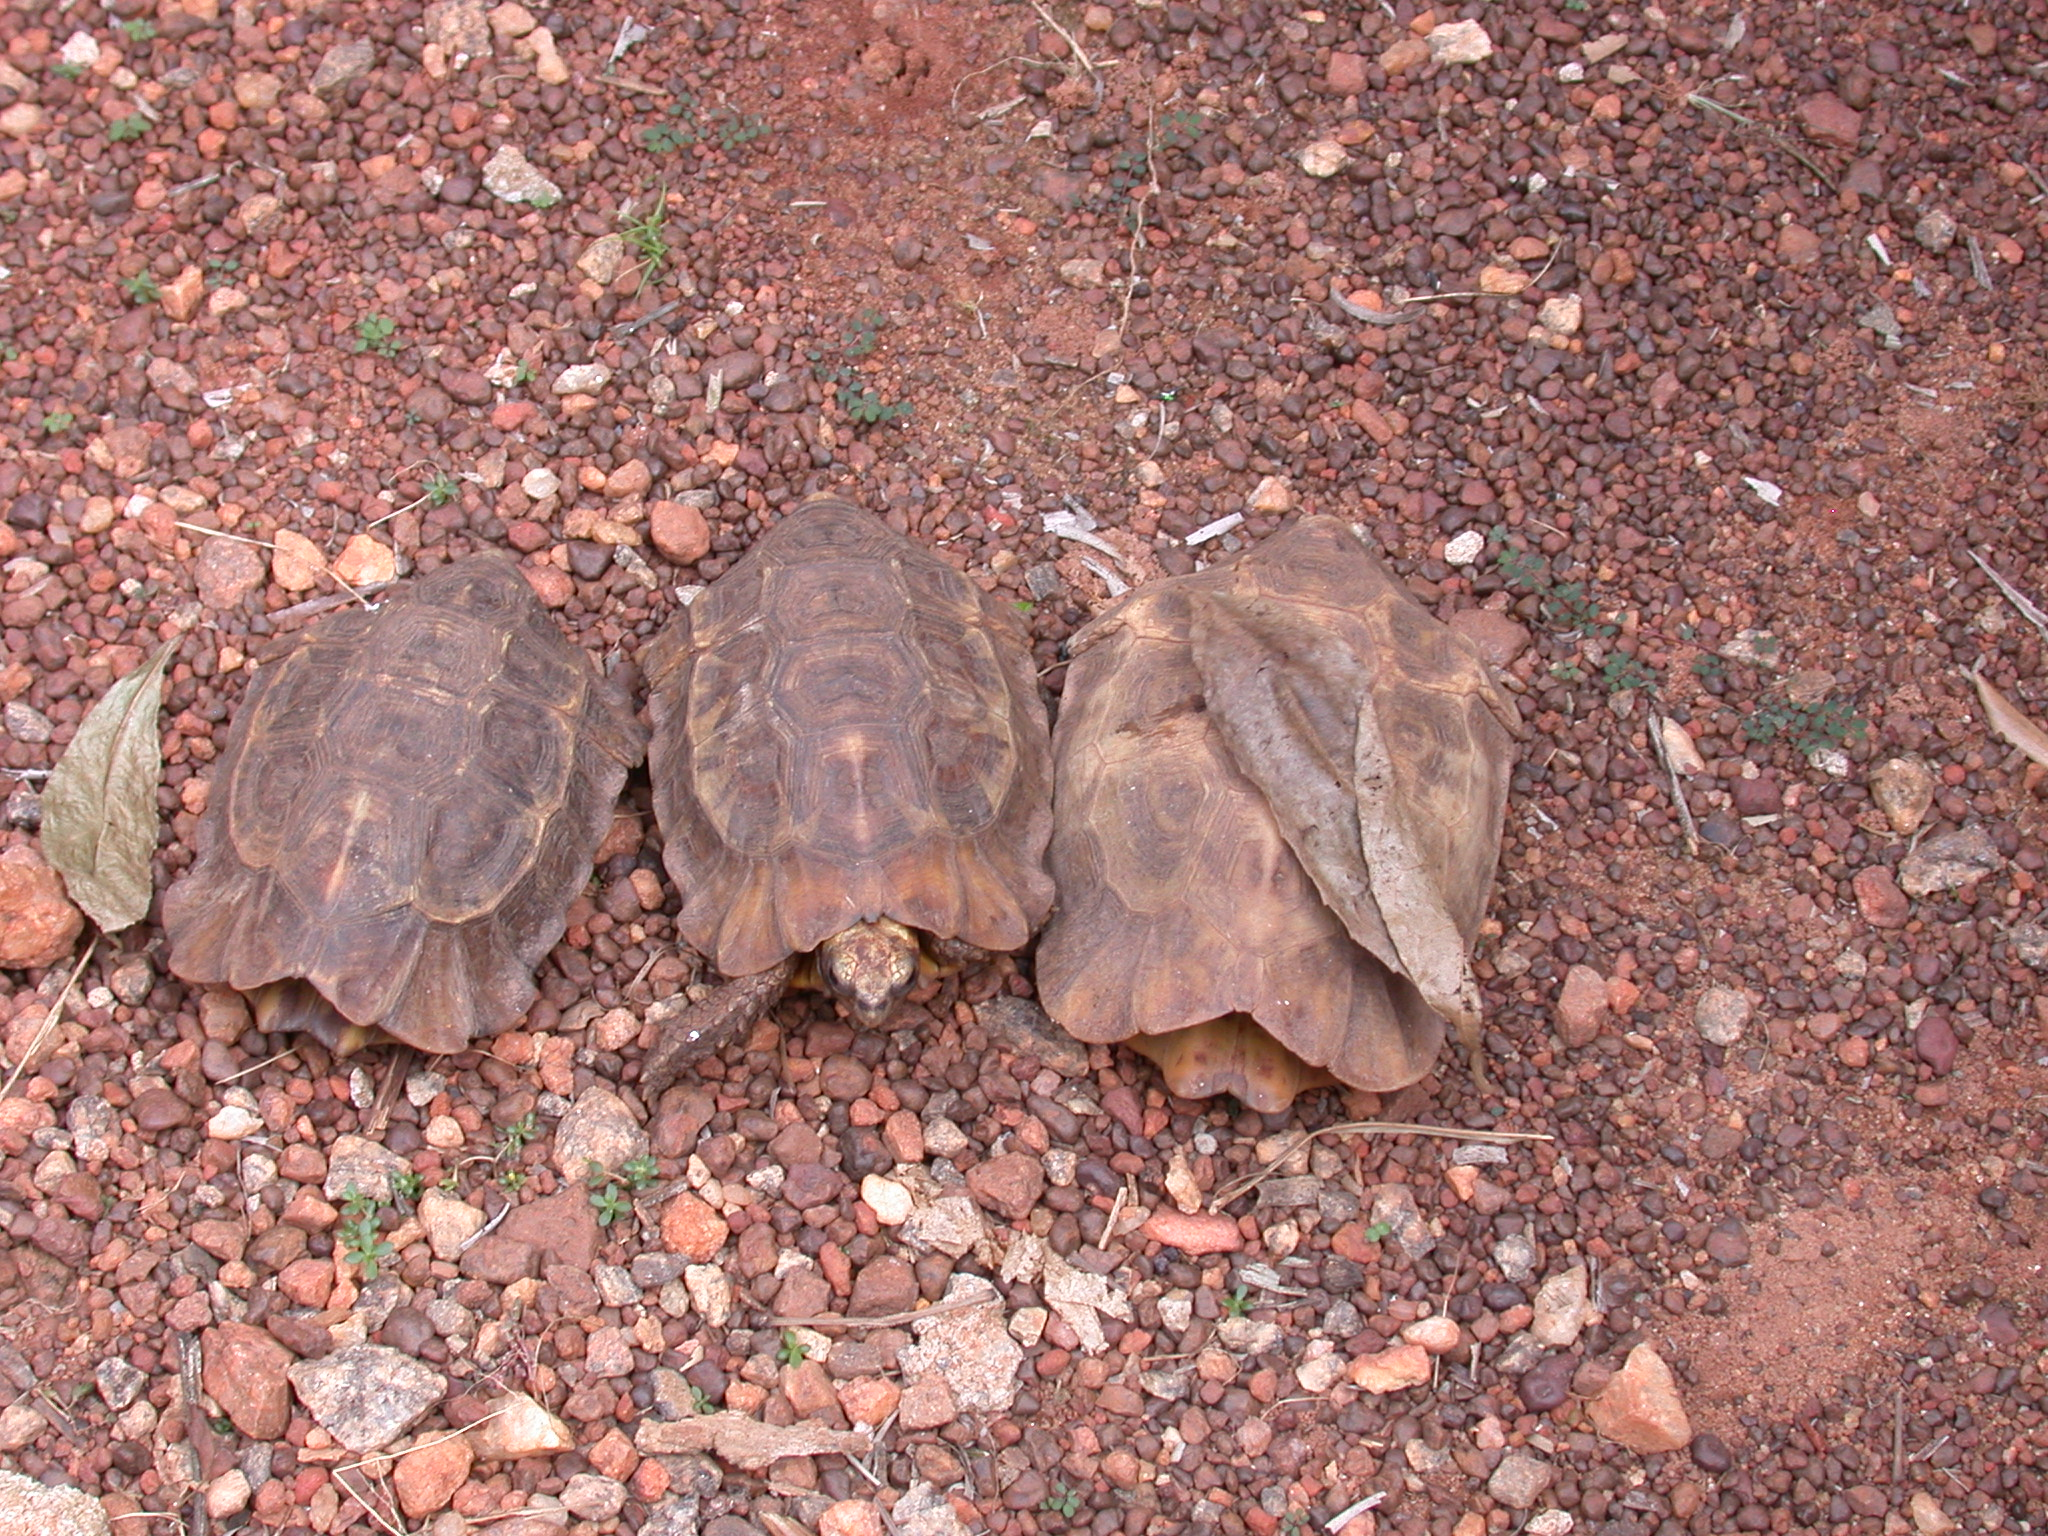 Live Turtle and Turtle Ancestor Shells Inhabiting Tree Grove in Courtyard, Asante Traditional Shrine at Ejisu-Besease, Ghana